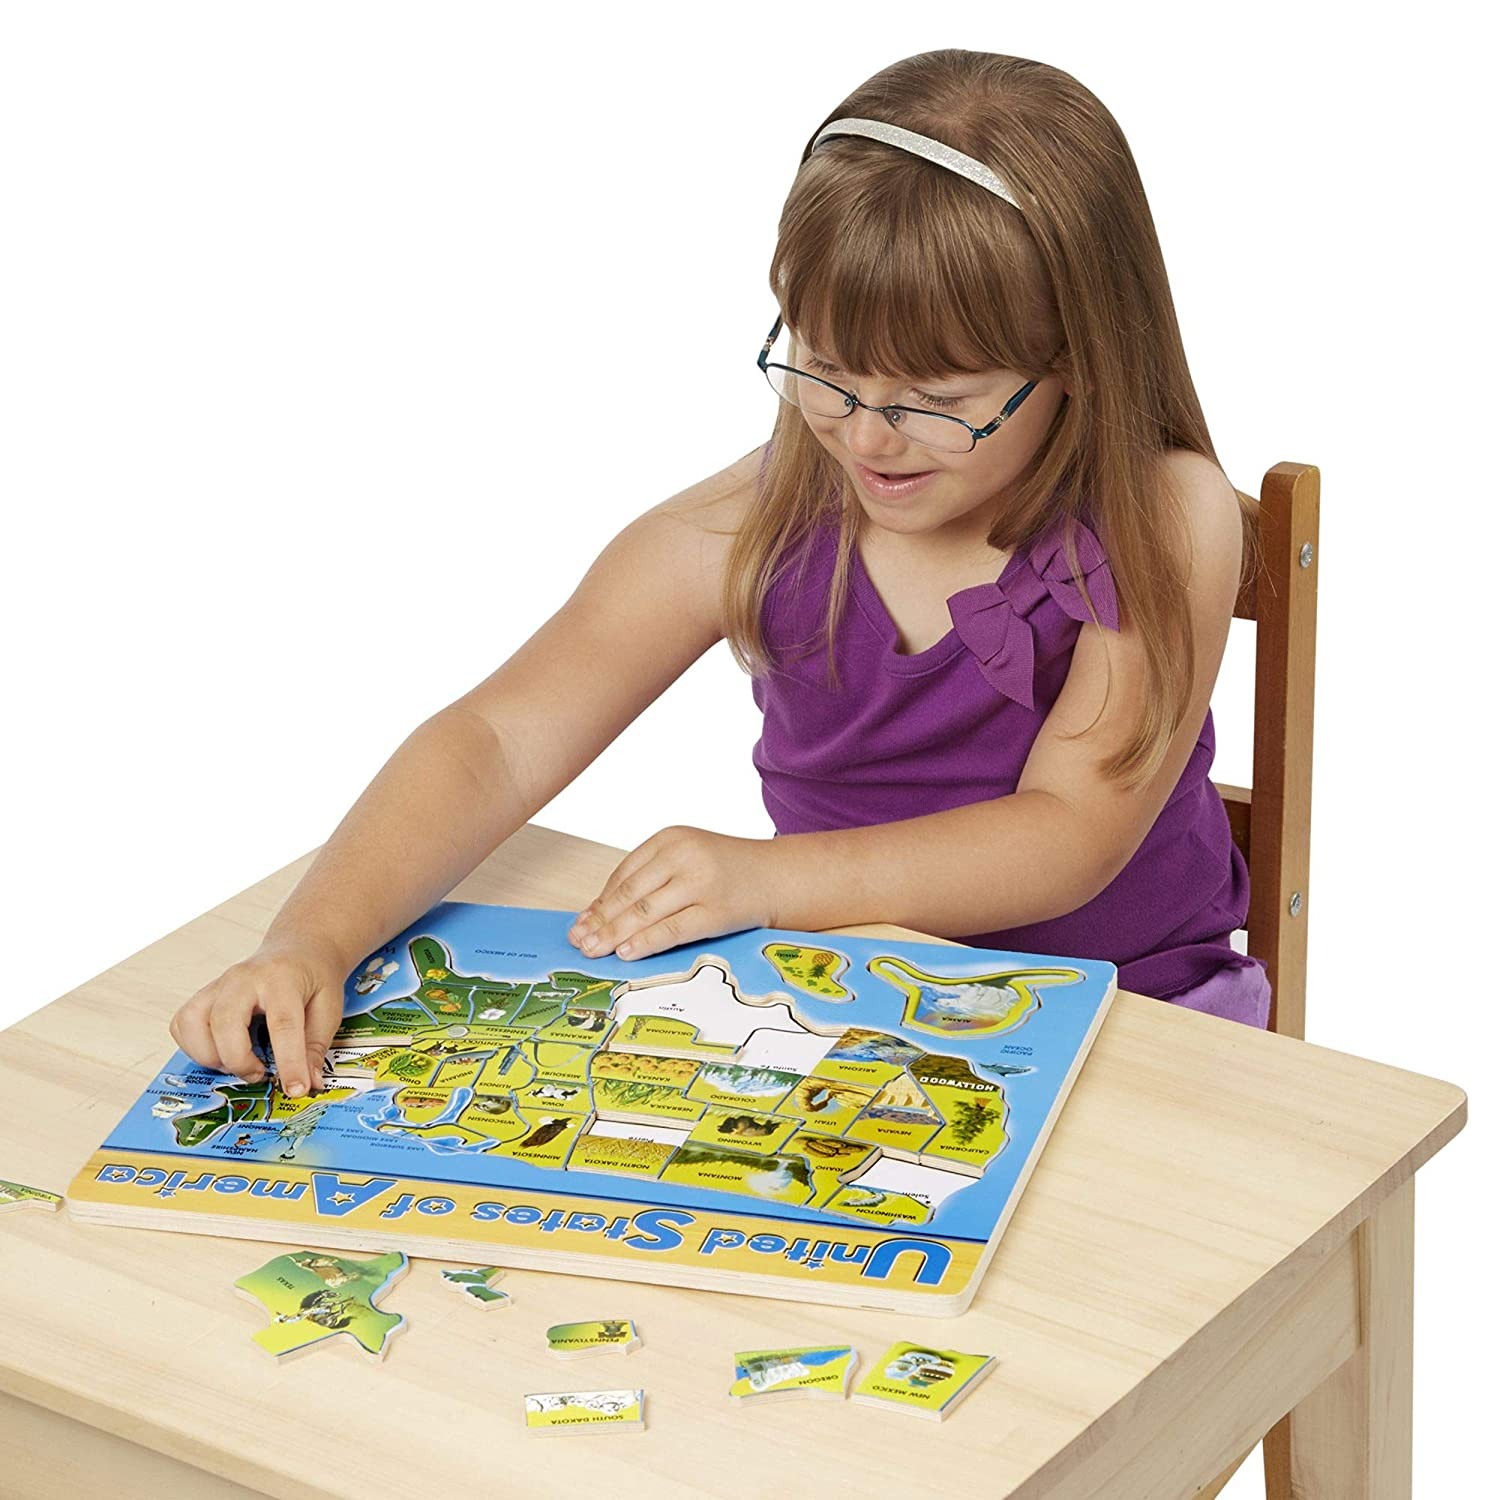 Easy to Assemble Puzzle Teaches Problem Solving, Geography and Shapes, 45 Pieces